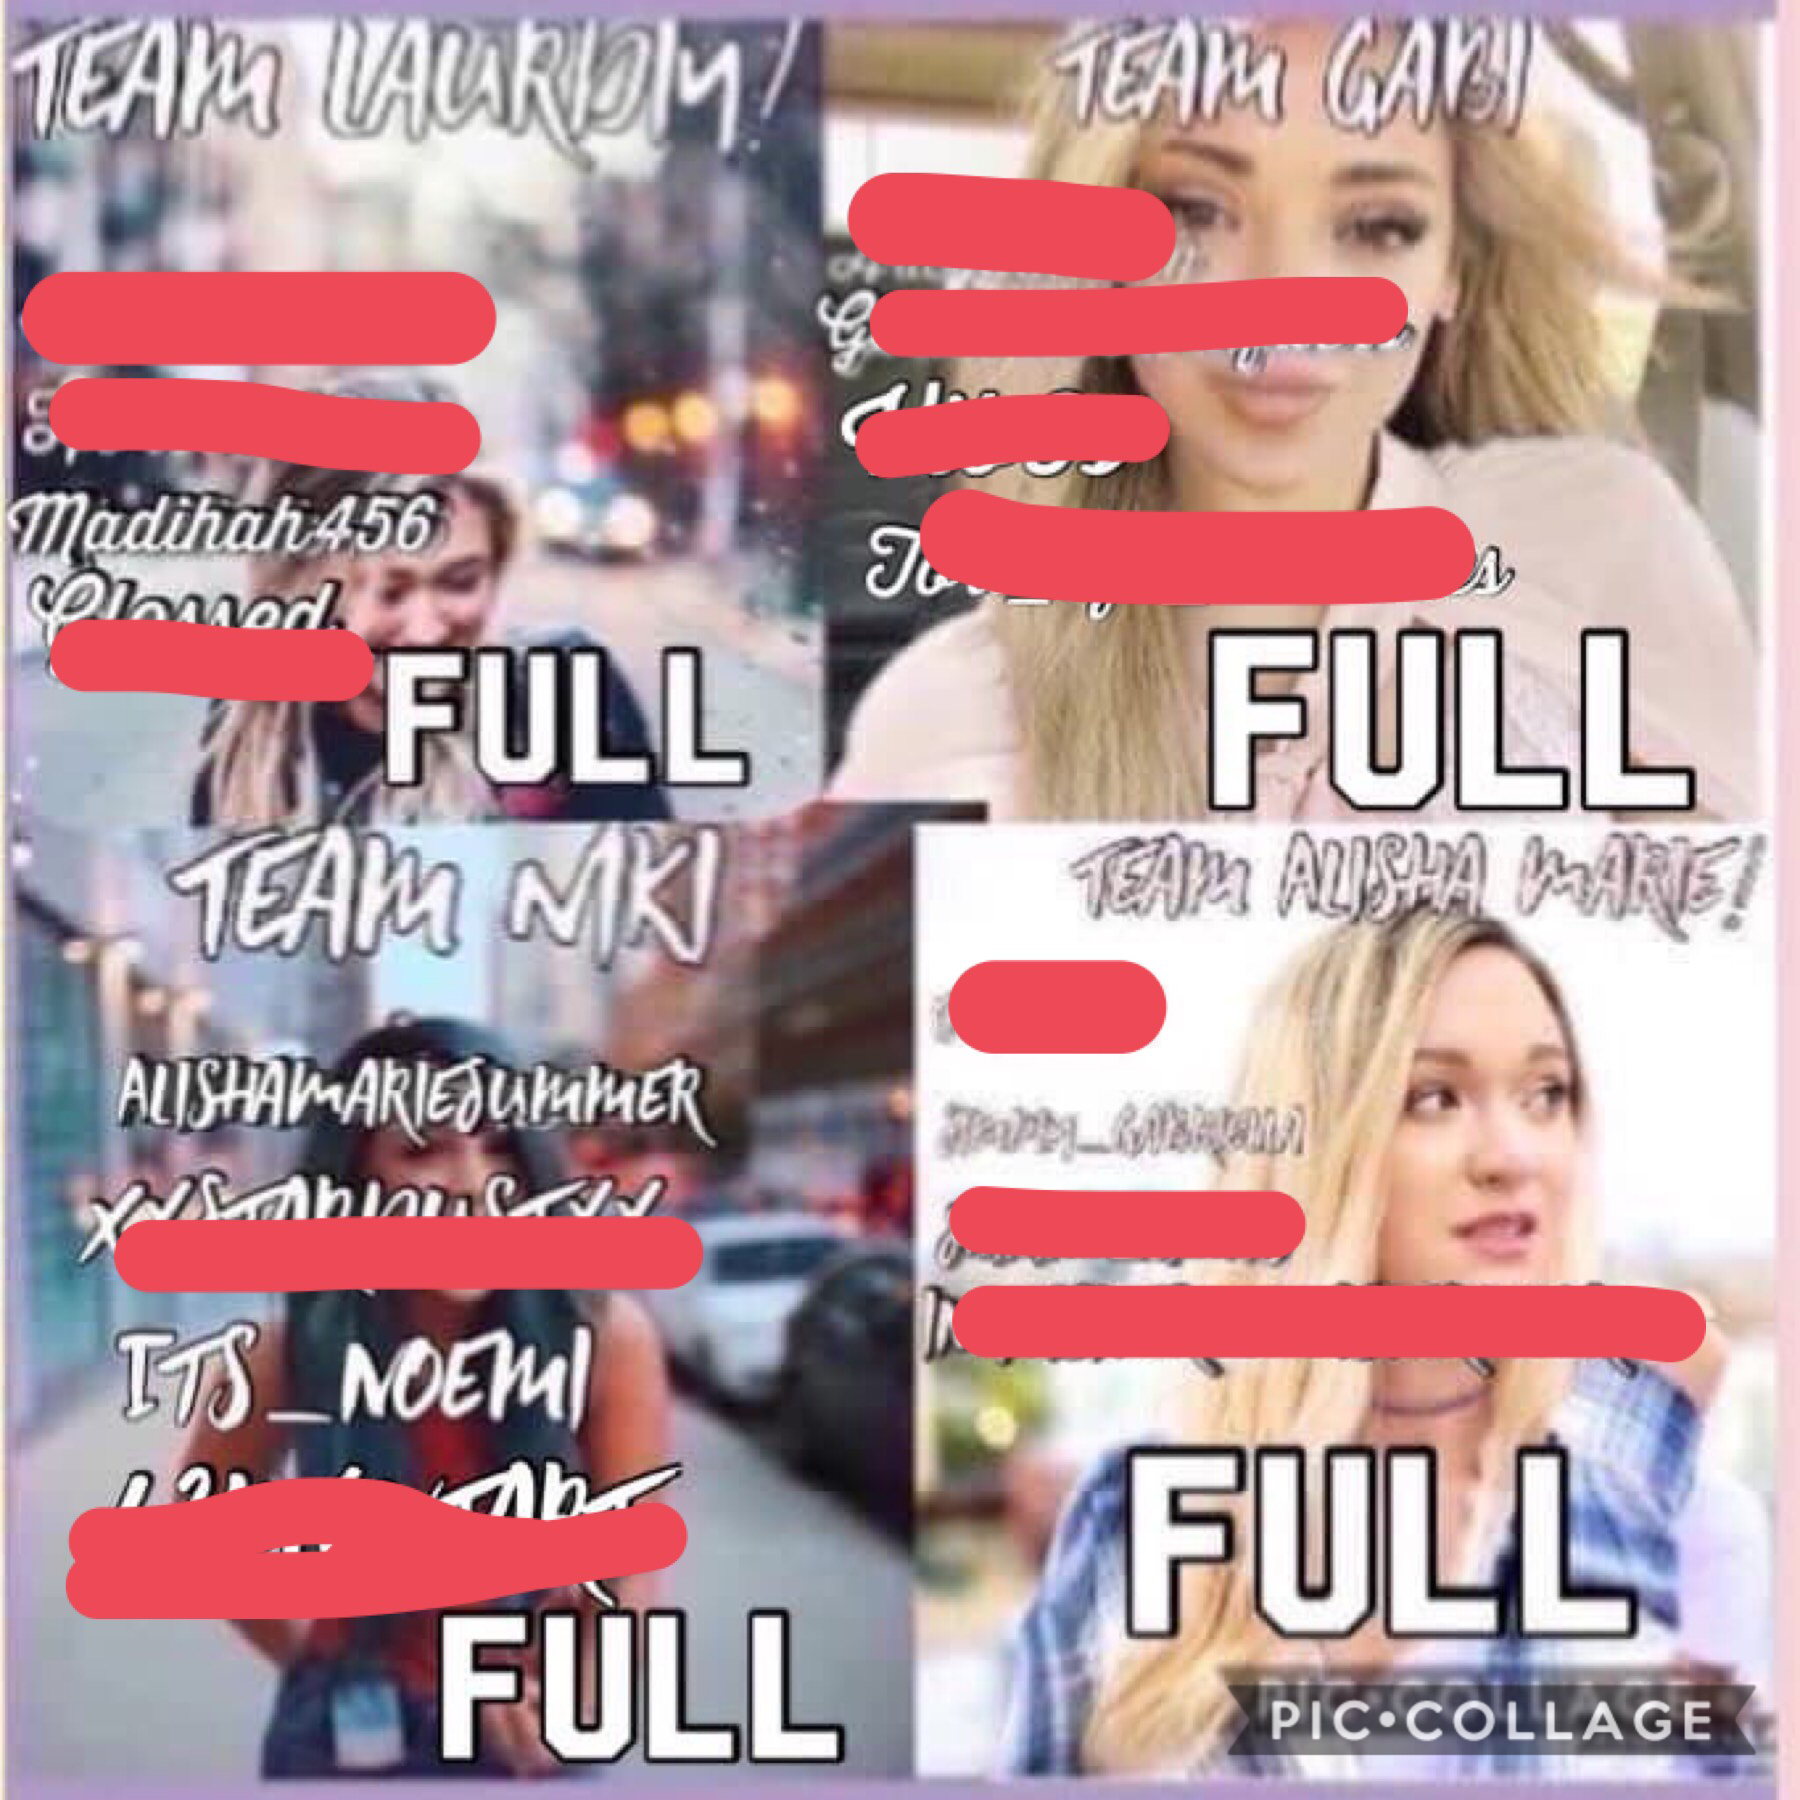 Sorry It was really hard to choose.. I gave and extremely big extension and Team Gabi Hasn't entered so I eliminated Team Gabi so I had to keep the two people in Team Niki.. Next round/Semi Finals will be posted soon! Good luck!